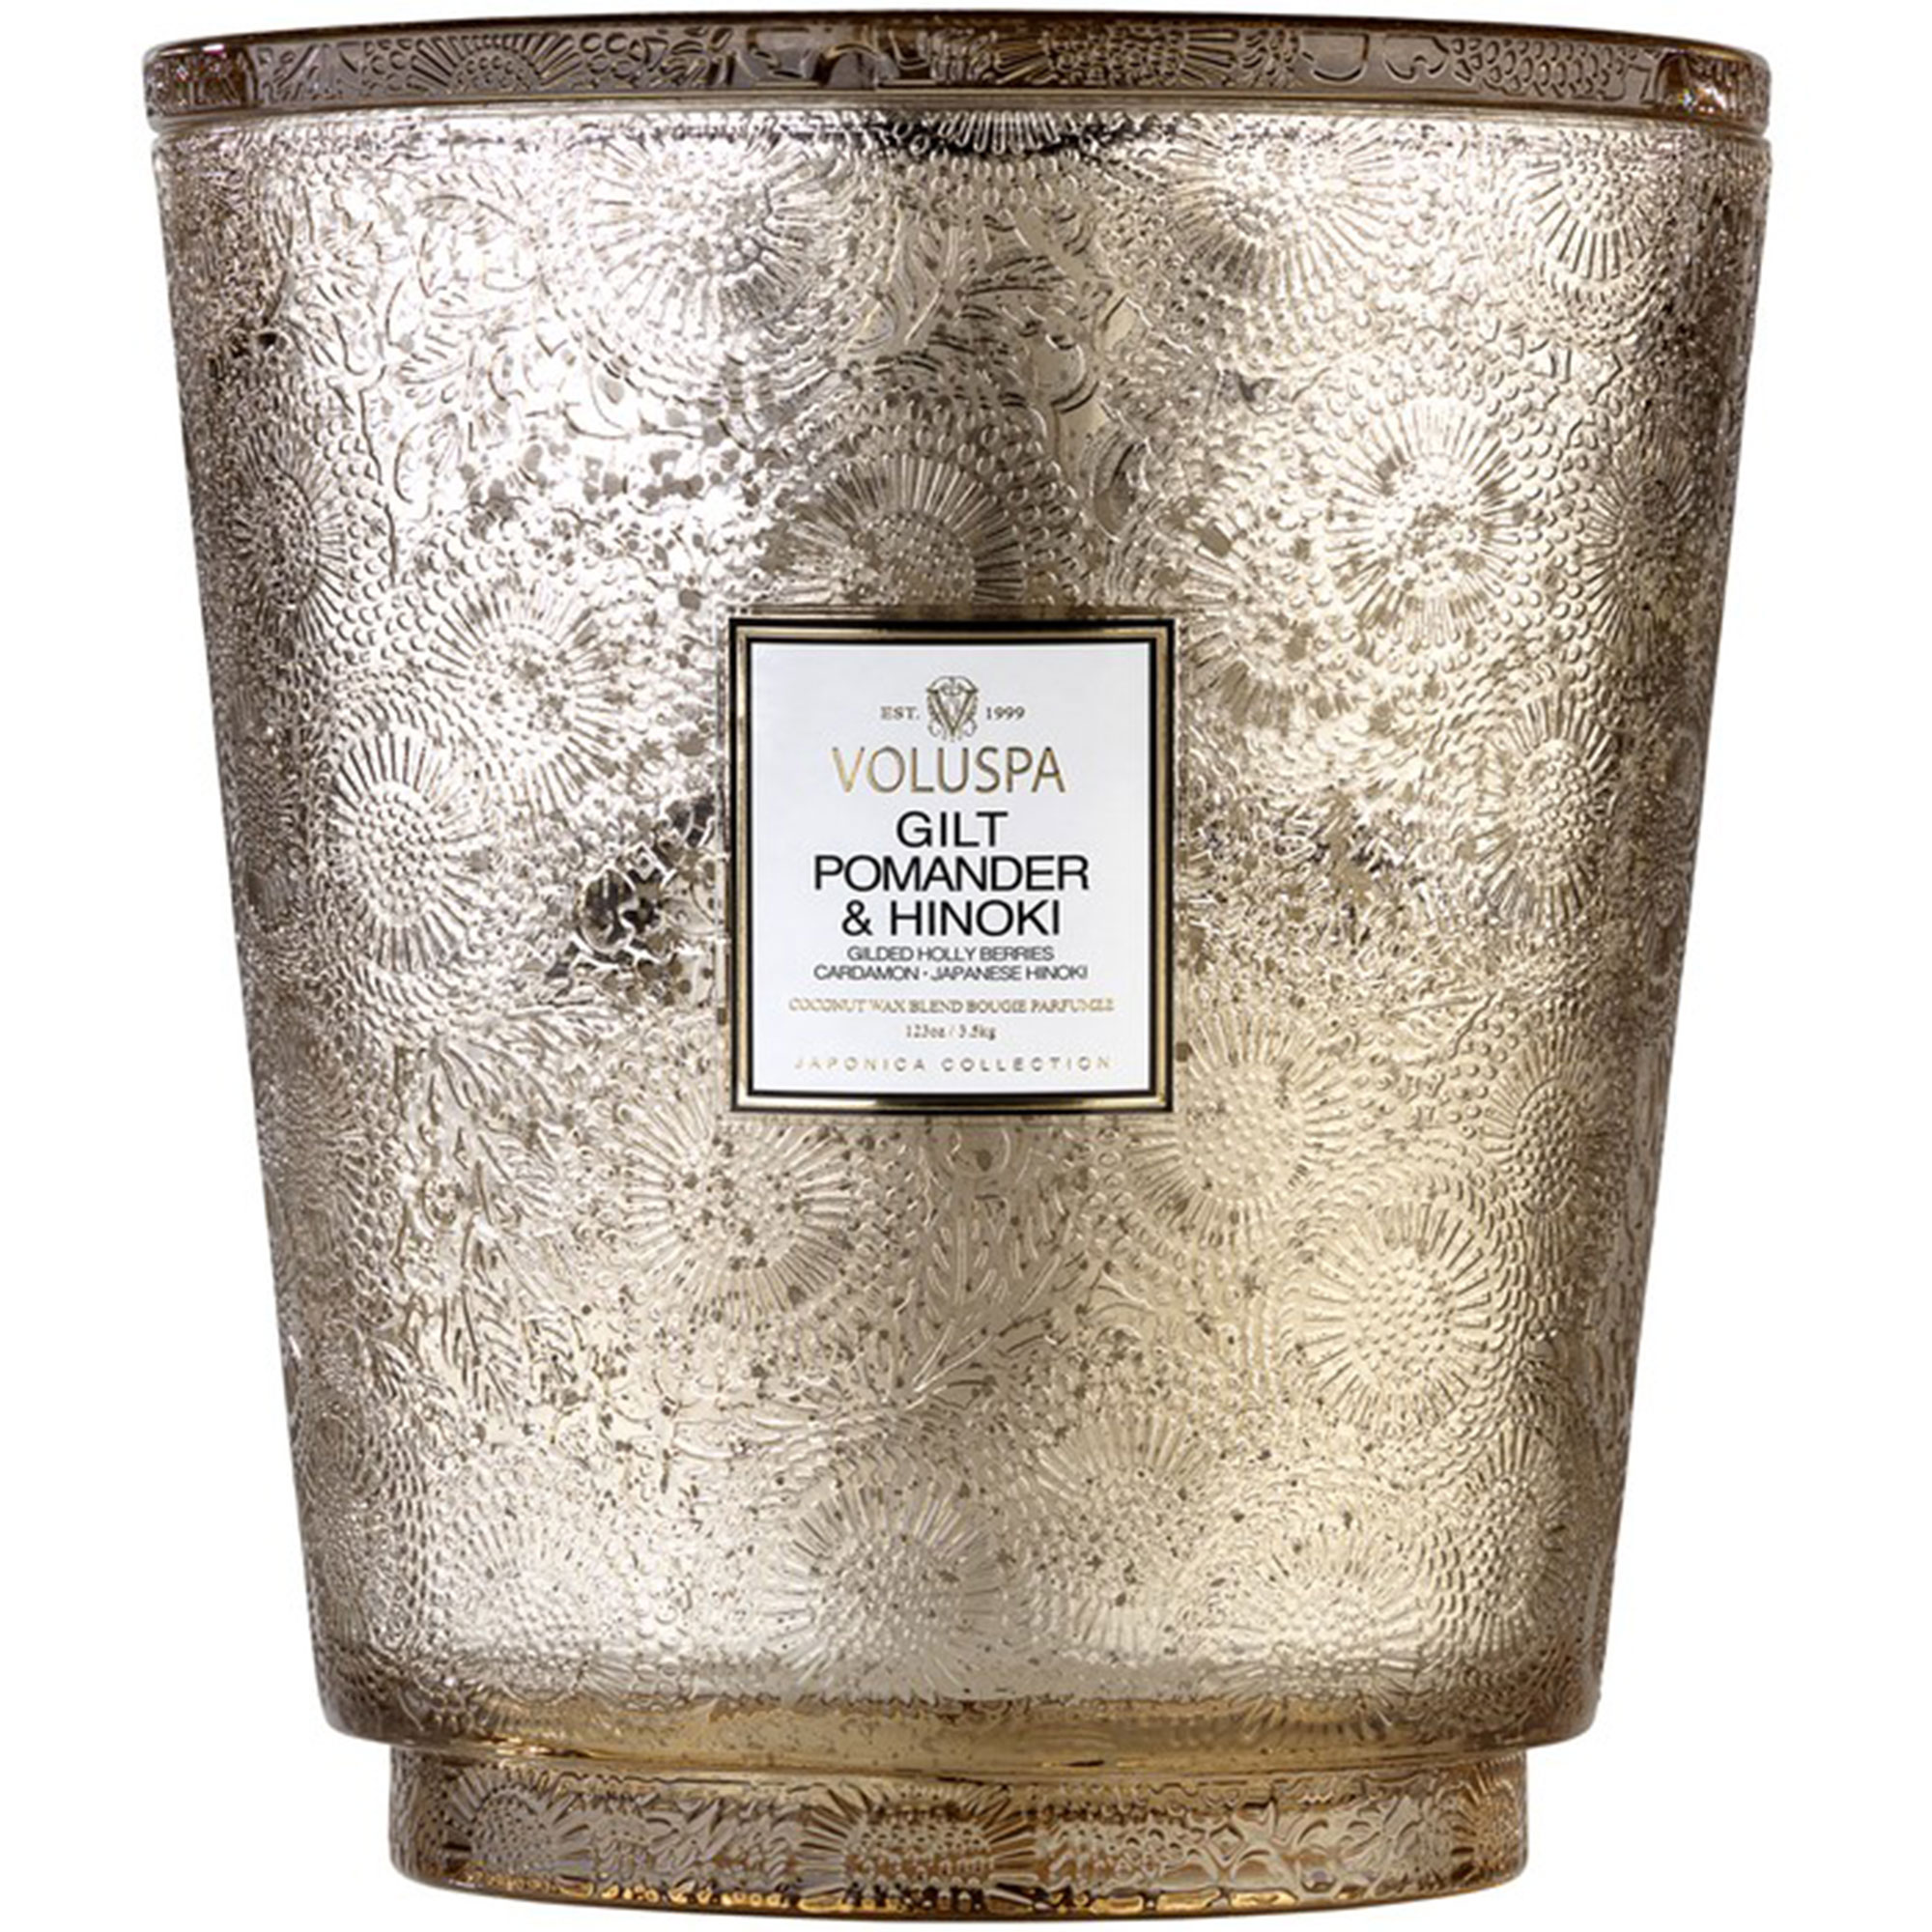 Valuspa Gilt Pomader Hearth Candle - Whether you're #blessed with a fireplace or not, this warm and woody blend features notes of golden spiced pomander, cardamom and Japanese Cyprus that give off the sexiest kind of bonfire vibes. $198, sephora.com